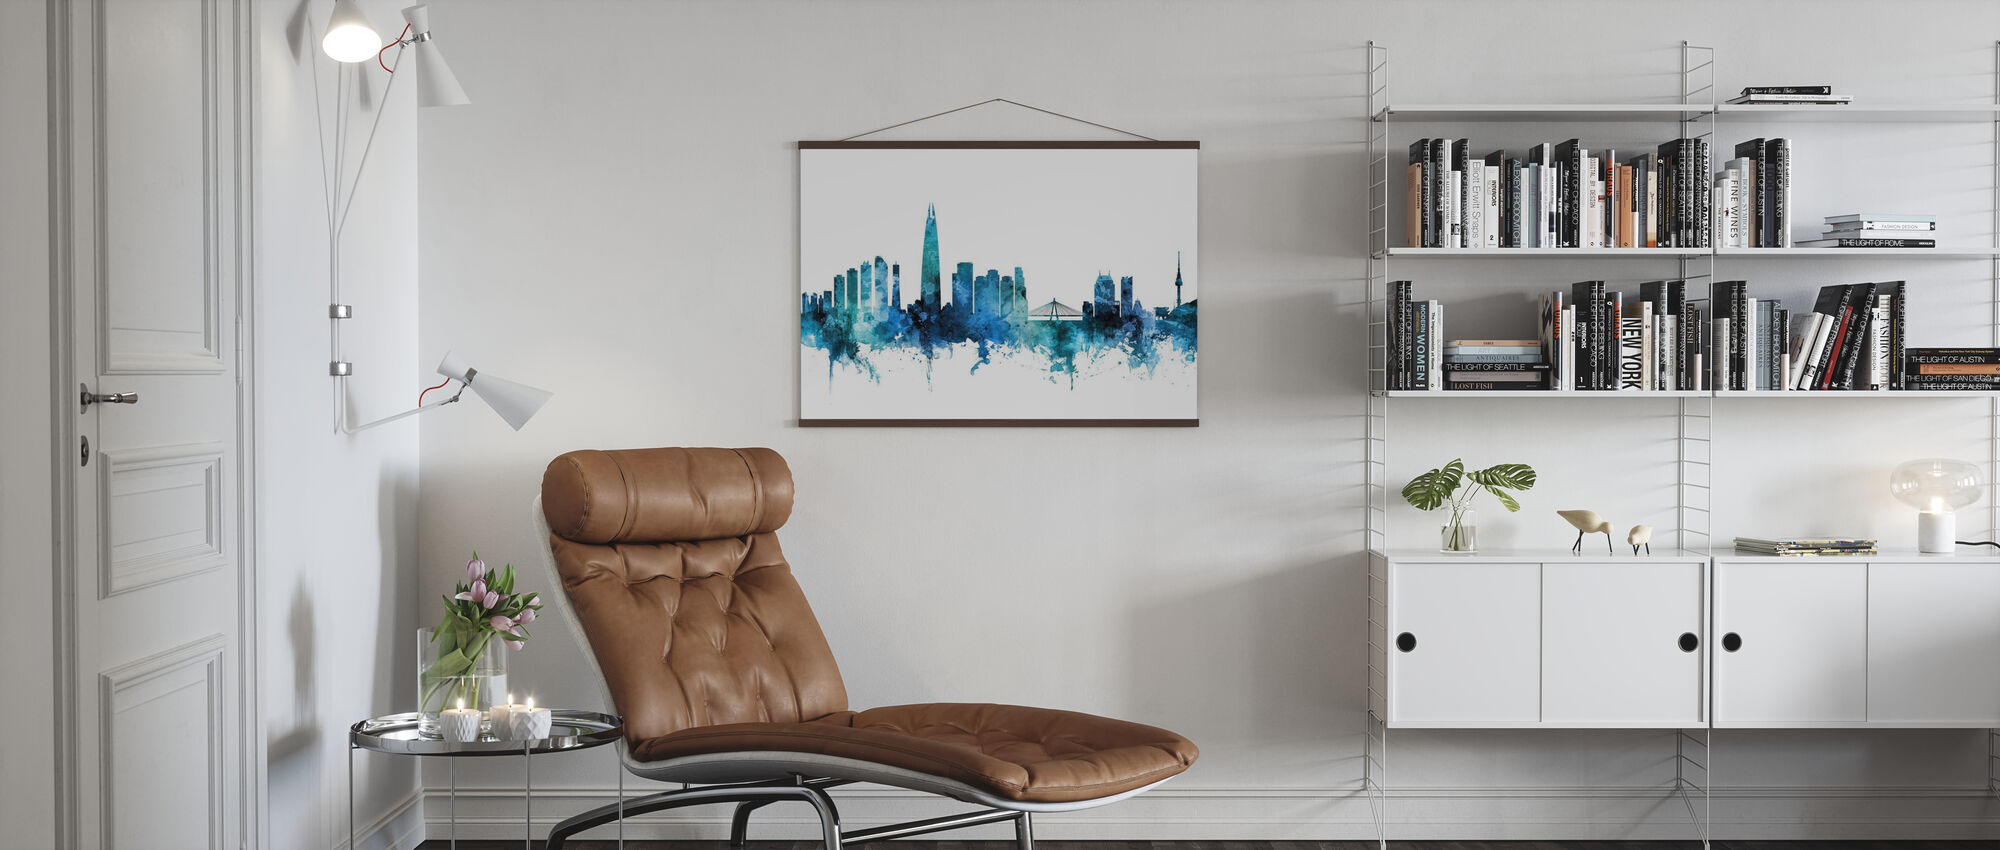 Seoul Skyline South Korea - Poster - Living Room